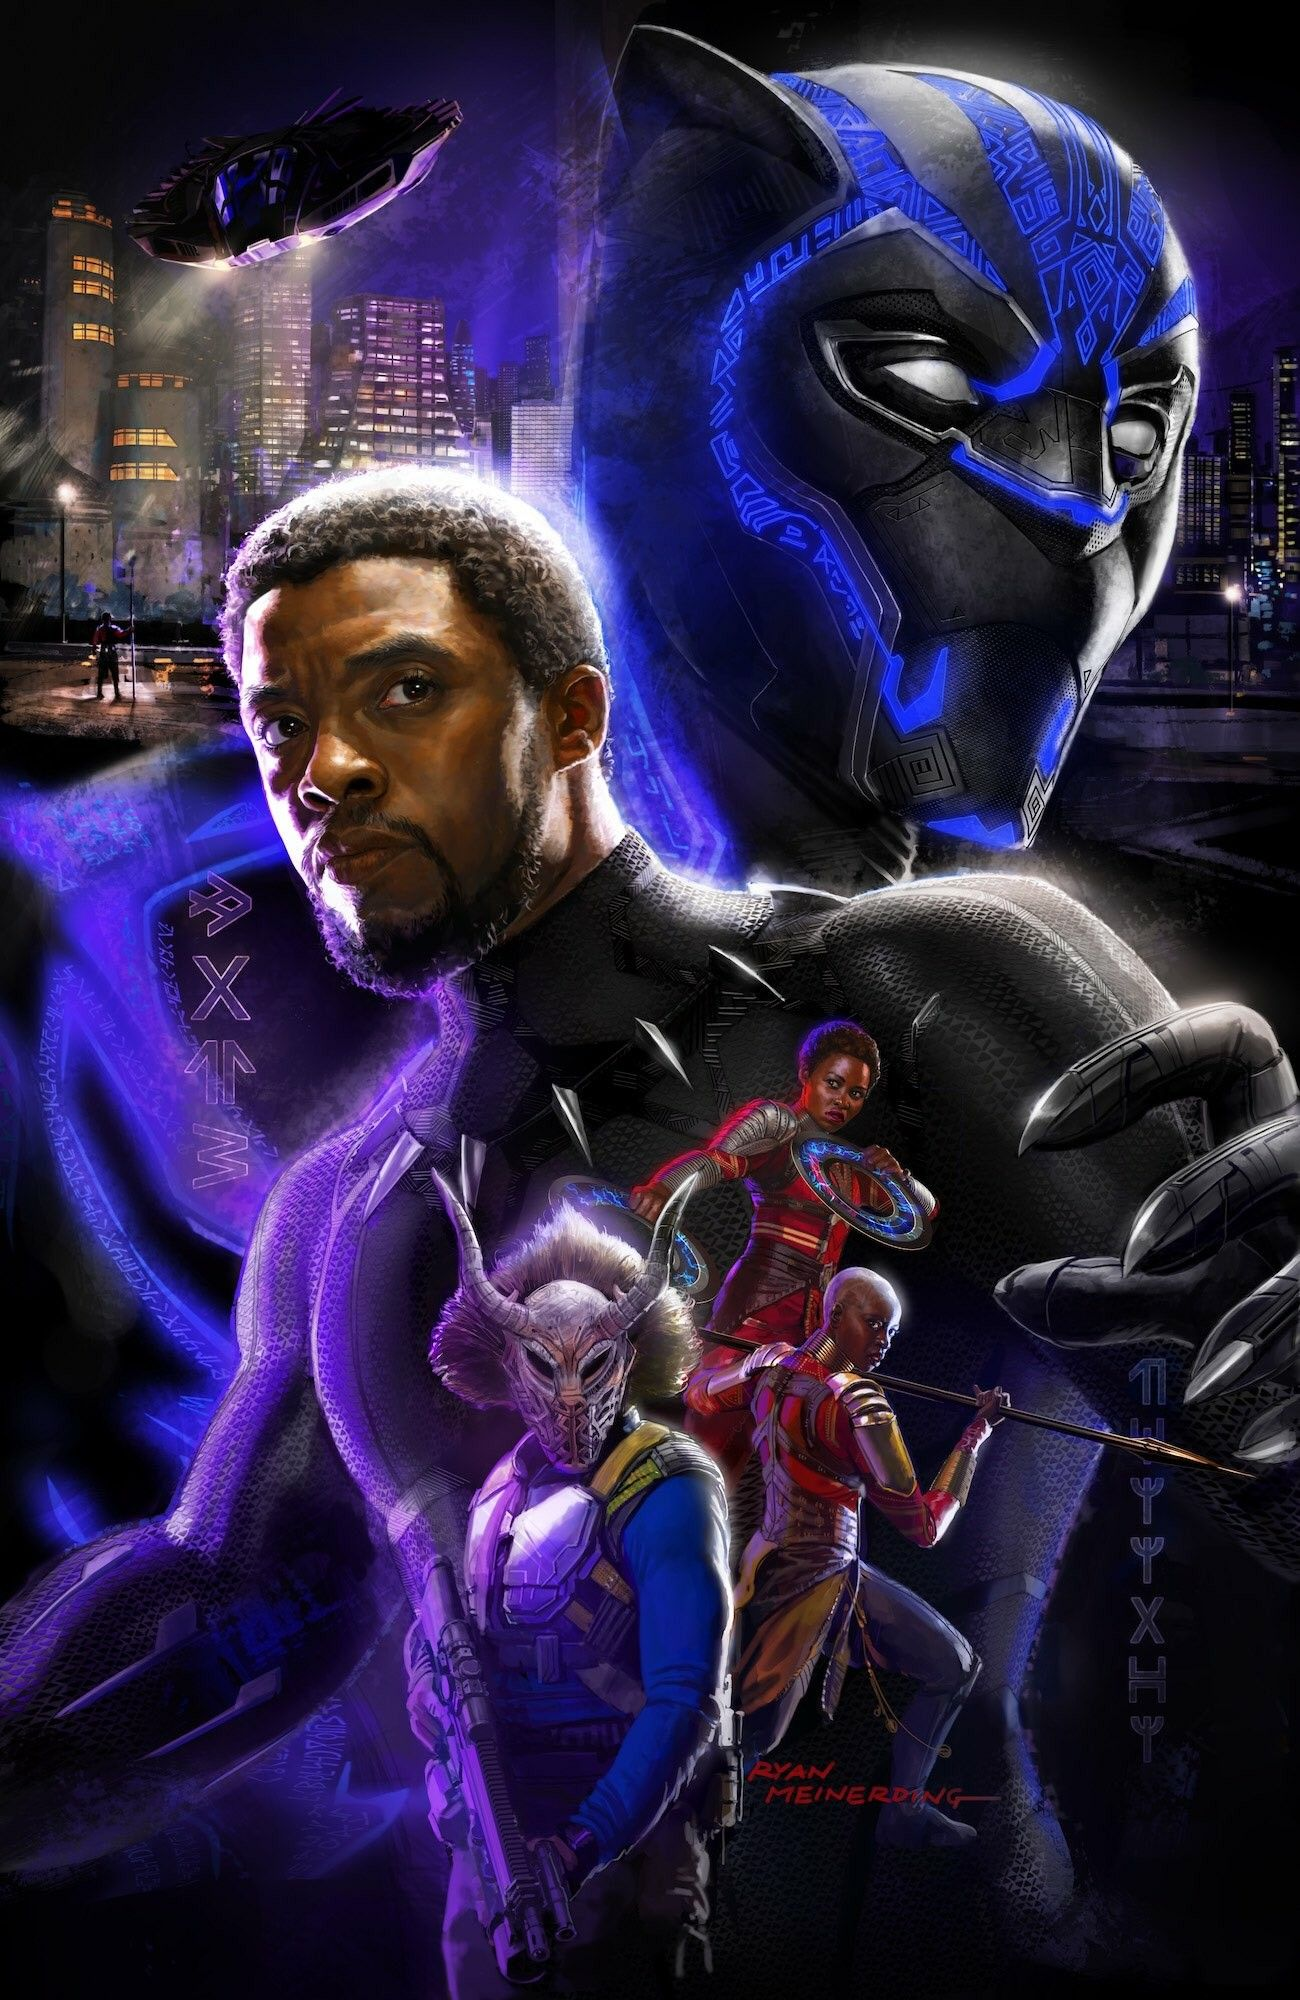 Warrior Falls Mcu Wallpaper Ryan Meinerding Black Panther Poster Sexy Comic